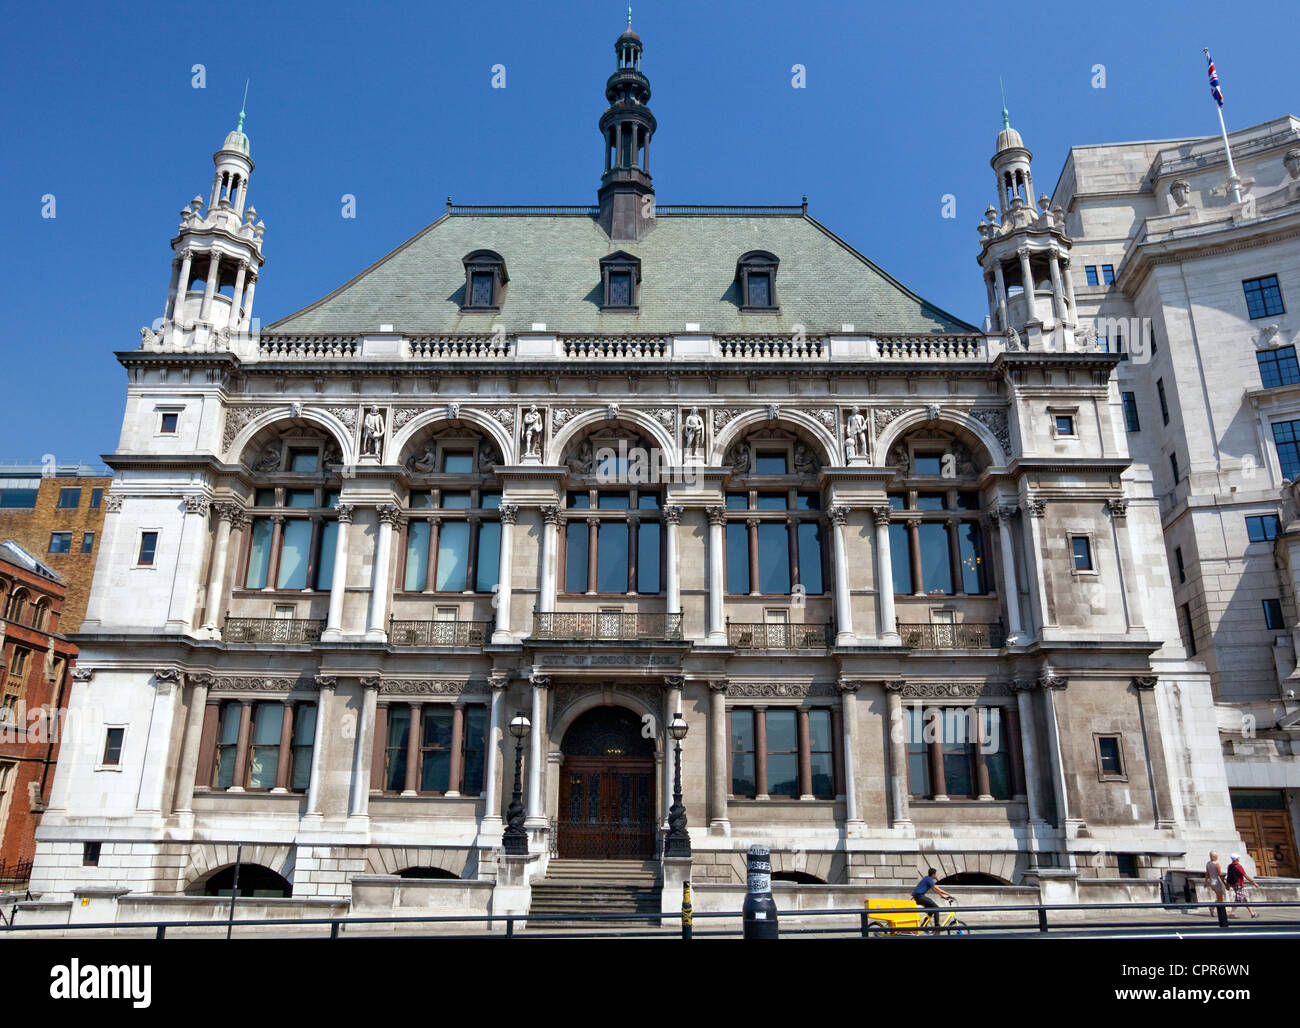 Former City of London School building on Victoria Embankment, London now occupied by J P Morgan - Stock Image